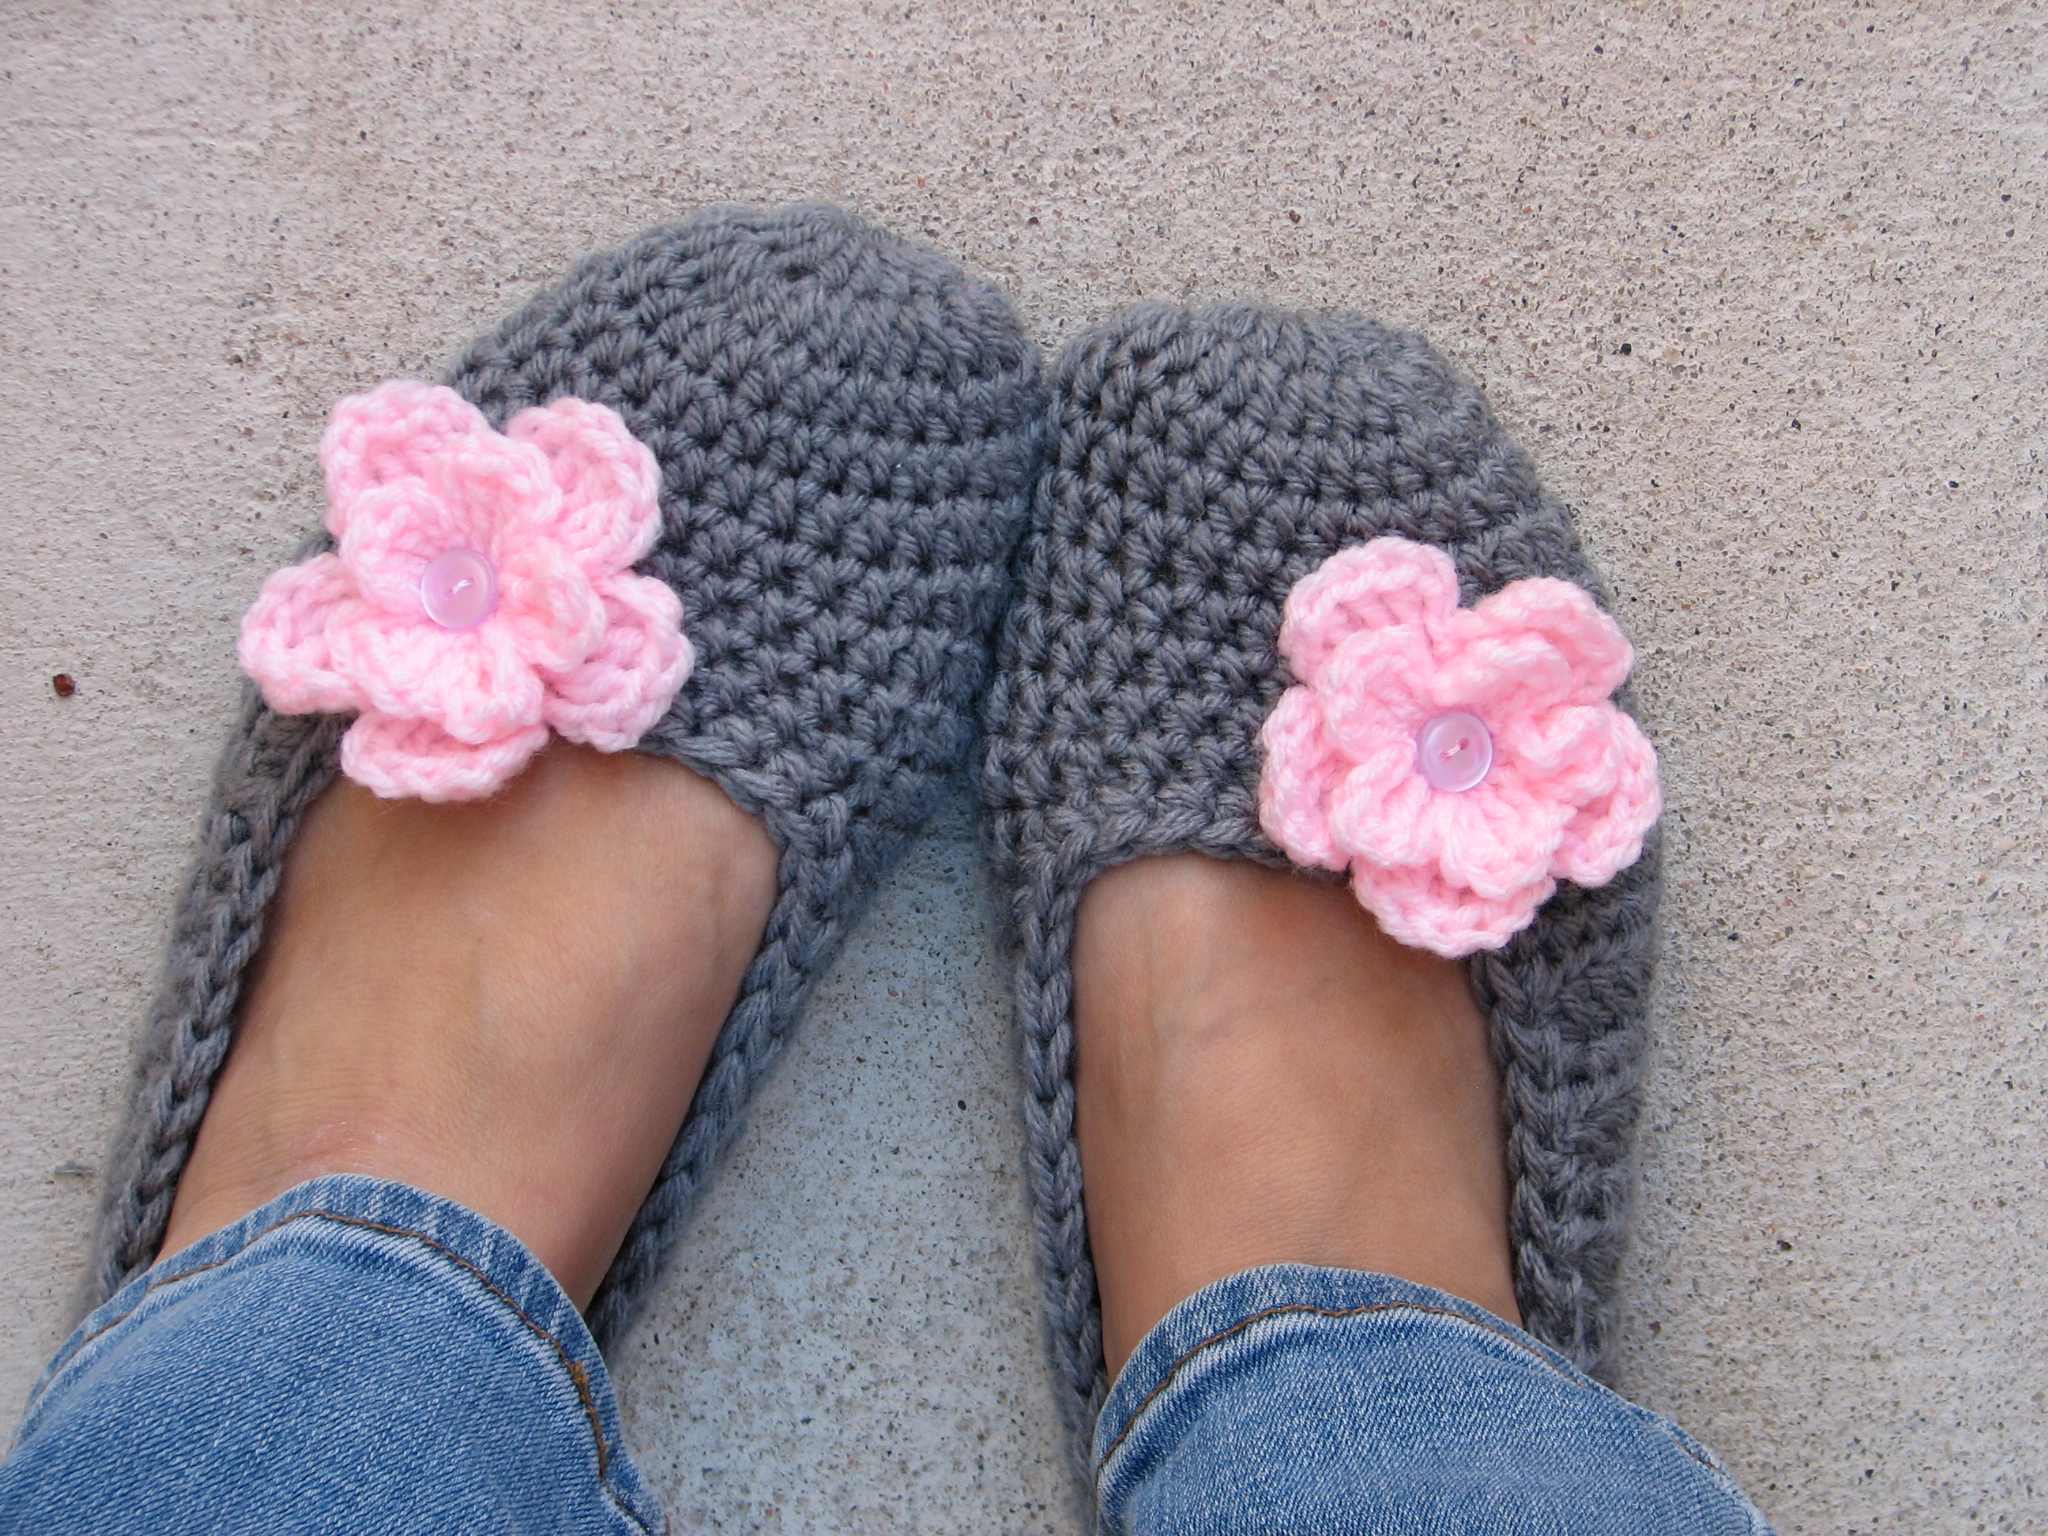 Adult slippers crochet pattern pdfeasy great for beginners adult slippers crochet pattern pdfeasy great for beginners shoes crochet pattern slippers pattern no 7 bankloansurffo Choice Image